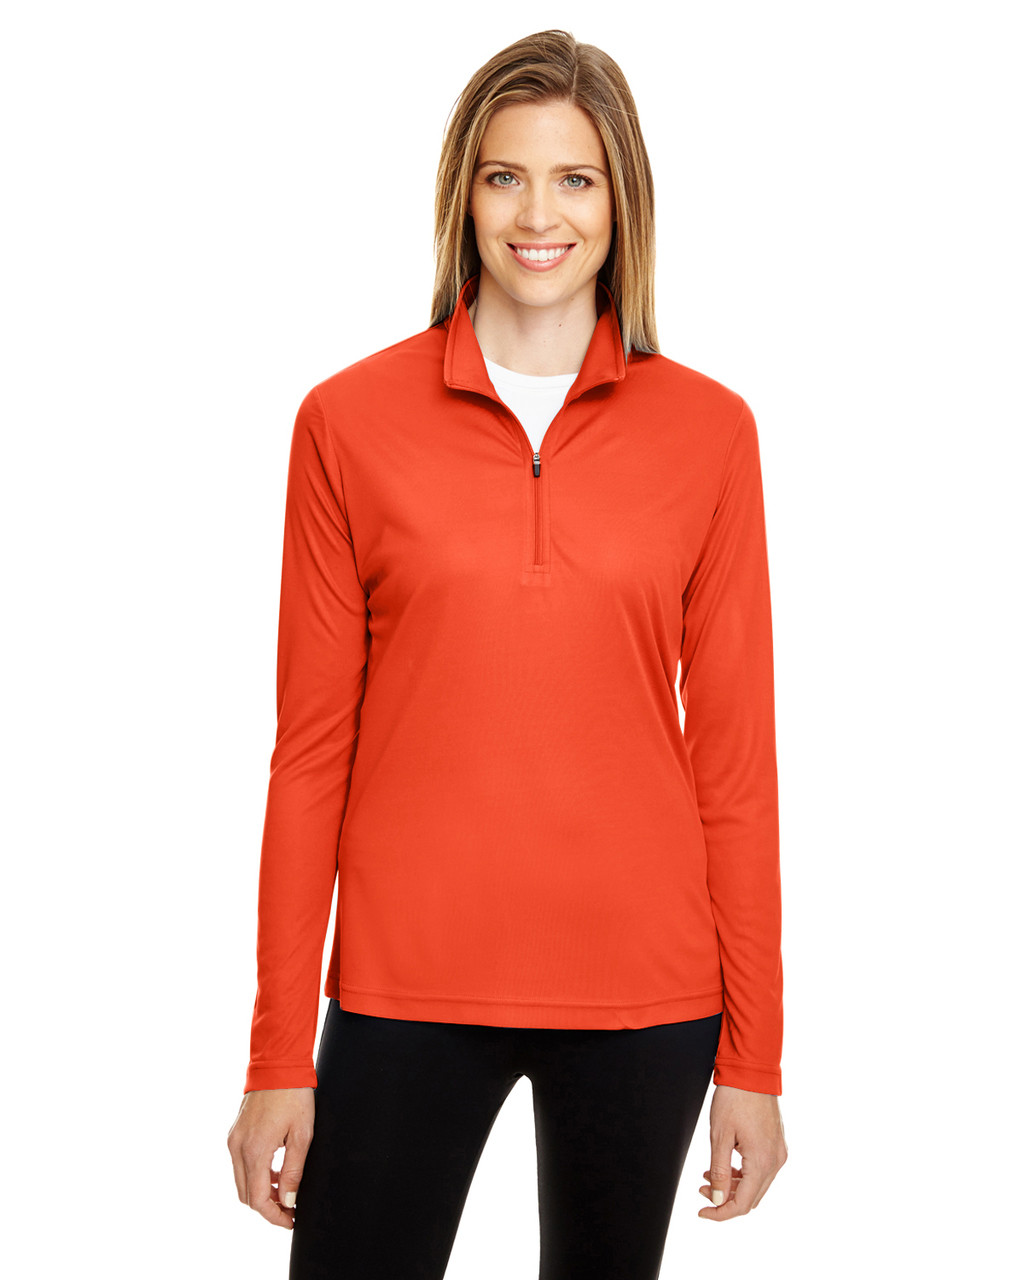 Sport Orange - TT31W Team 365 Ladies' Zone Performance Quarter-Zip Shirt